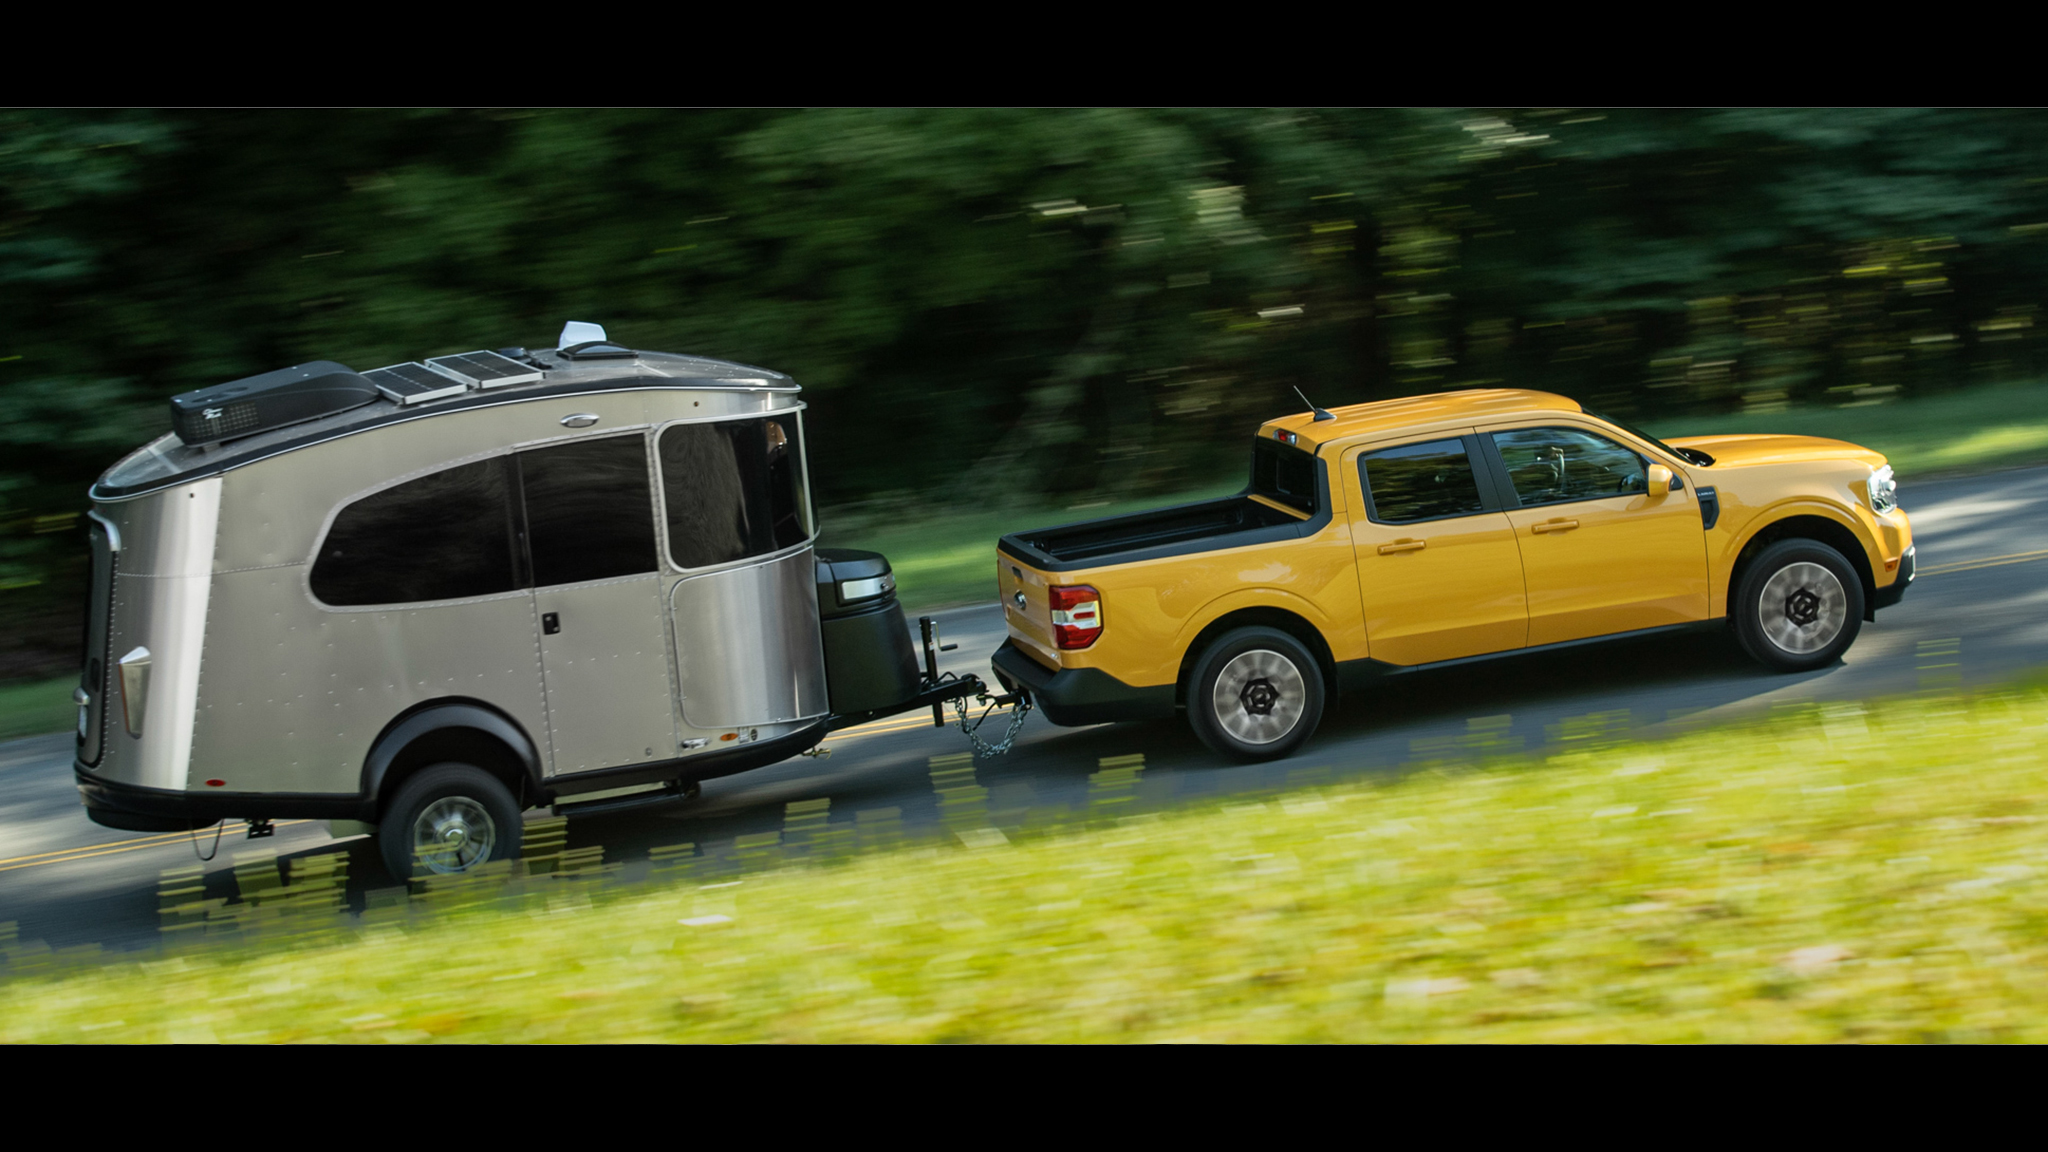 002 Towing And Hauling With The 2022 Ford Maverick